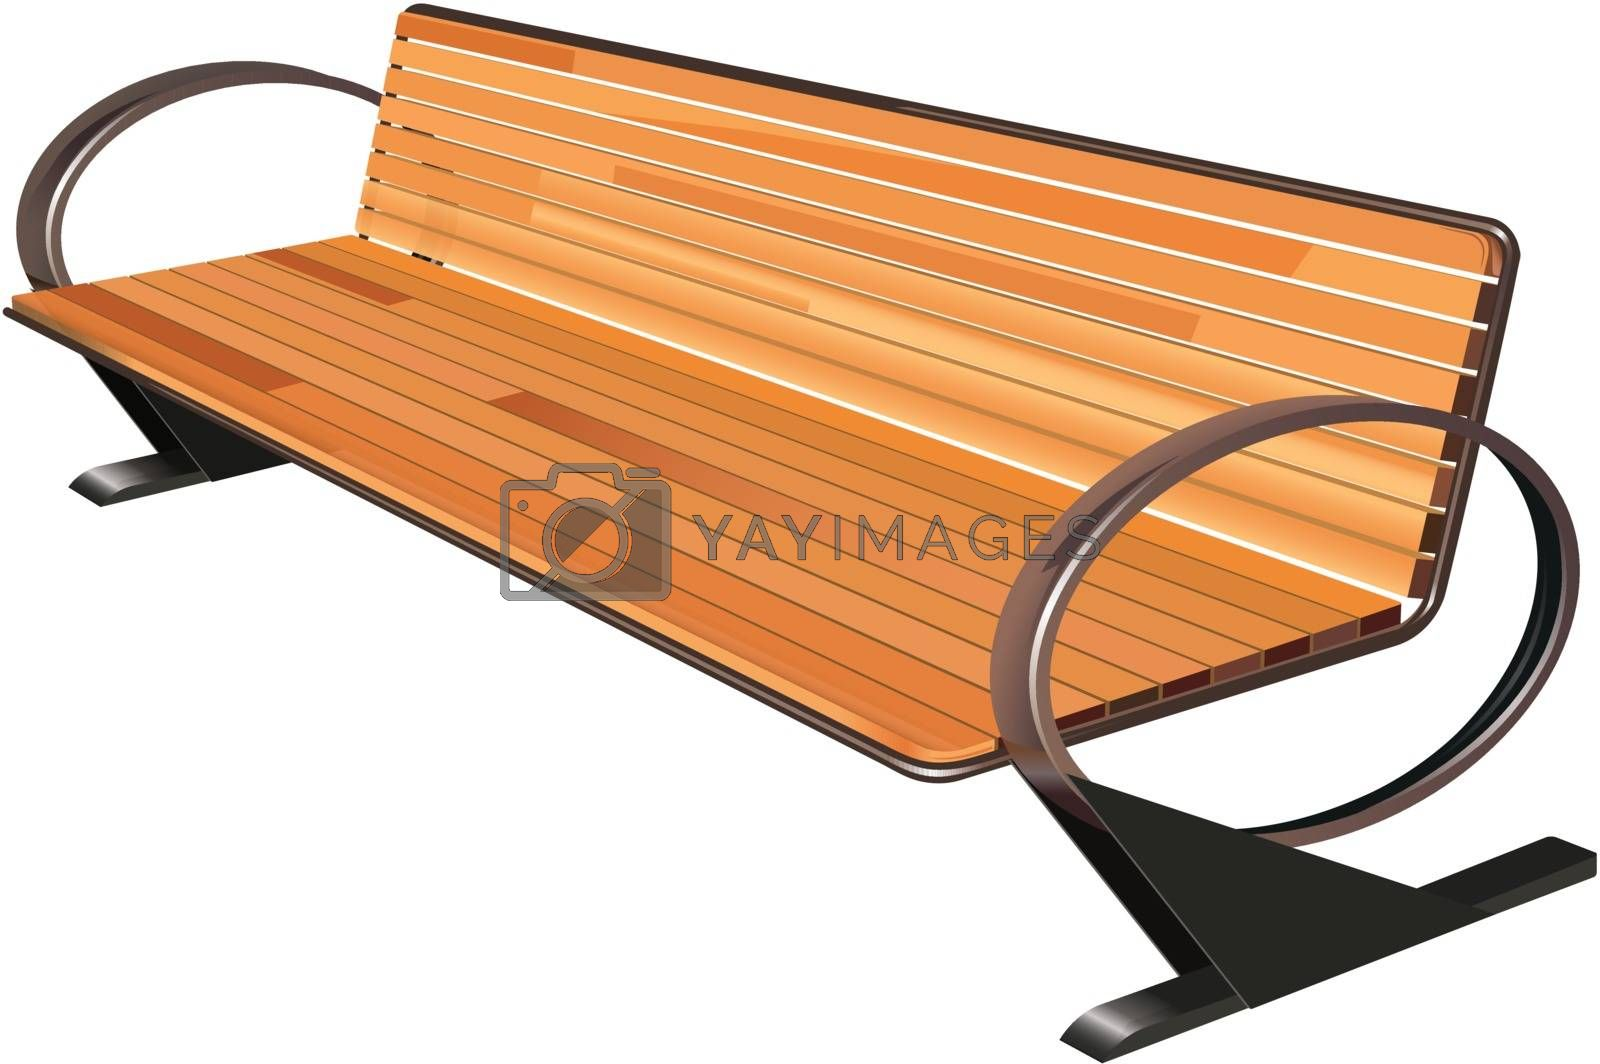 Royalty free image of bench by kovacevic